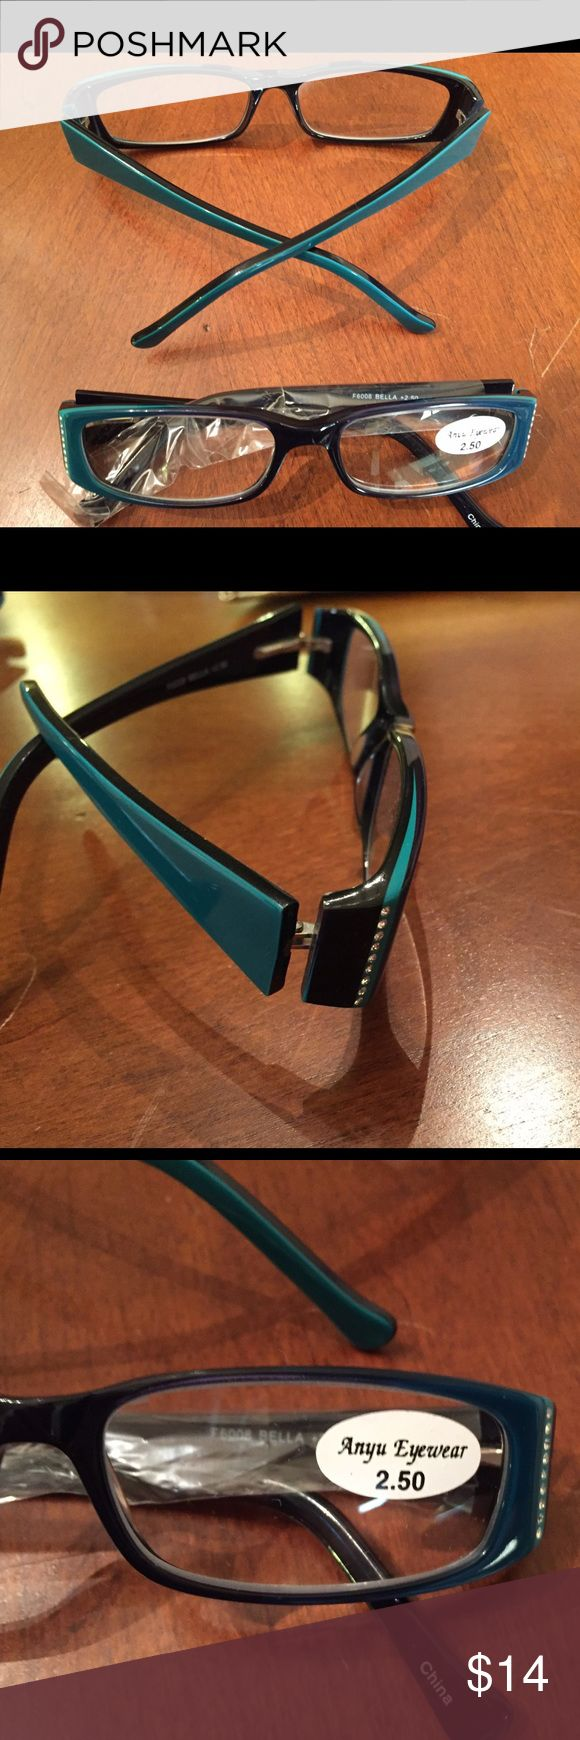 2 Pair of Reading Glasses Turquoise with black and silver sequins on the arms. Have a set at work and 1for home. Never worn. NWT Anyu Eyewear Accessories Glasses